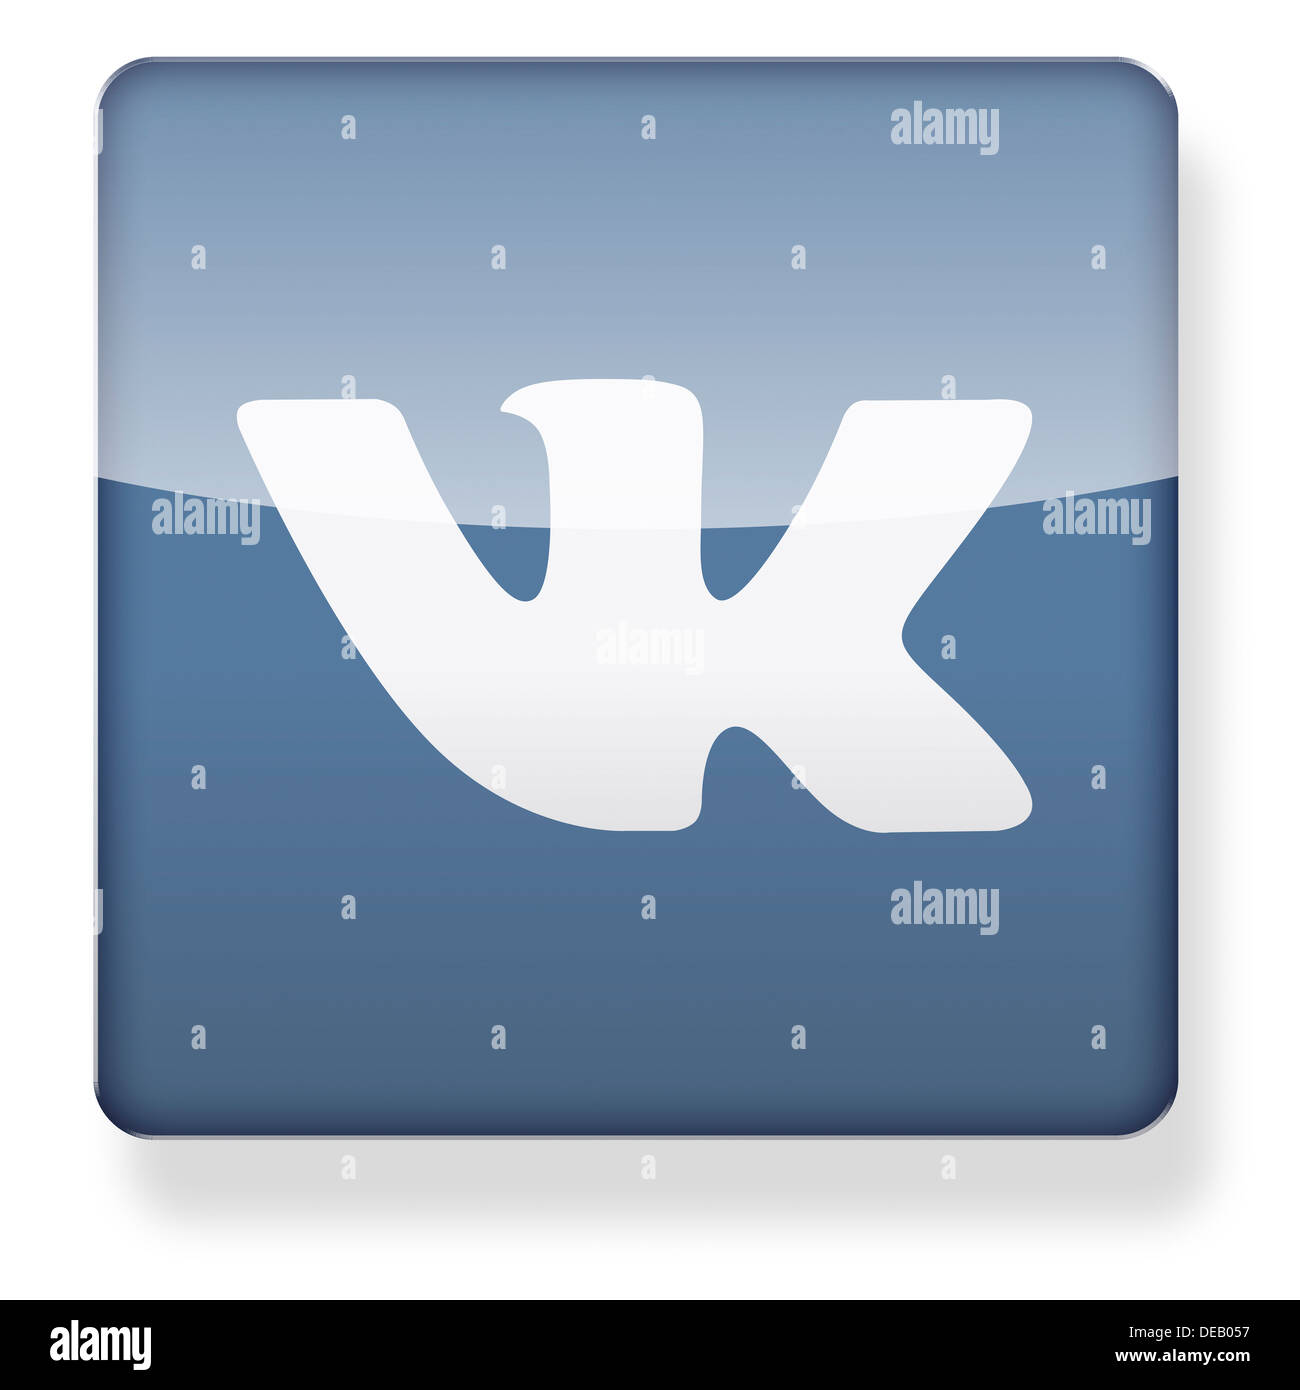 How to close a group in VKontakte: an easy and quick way